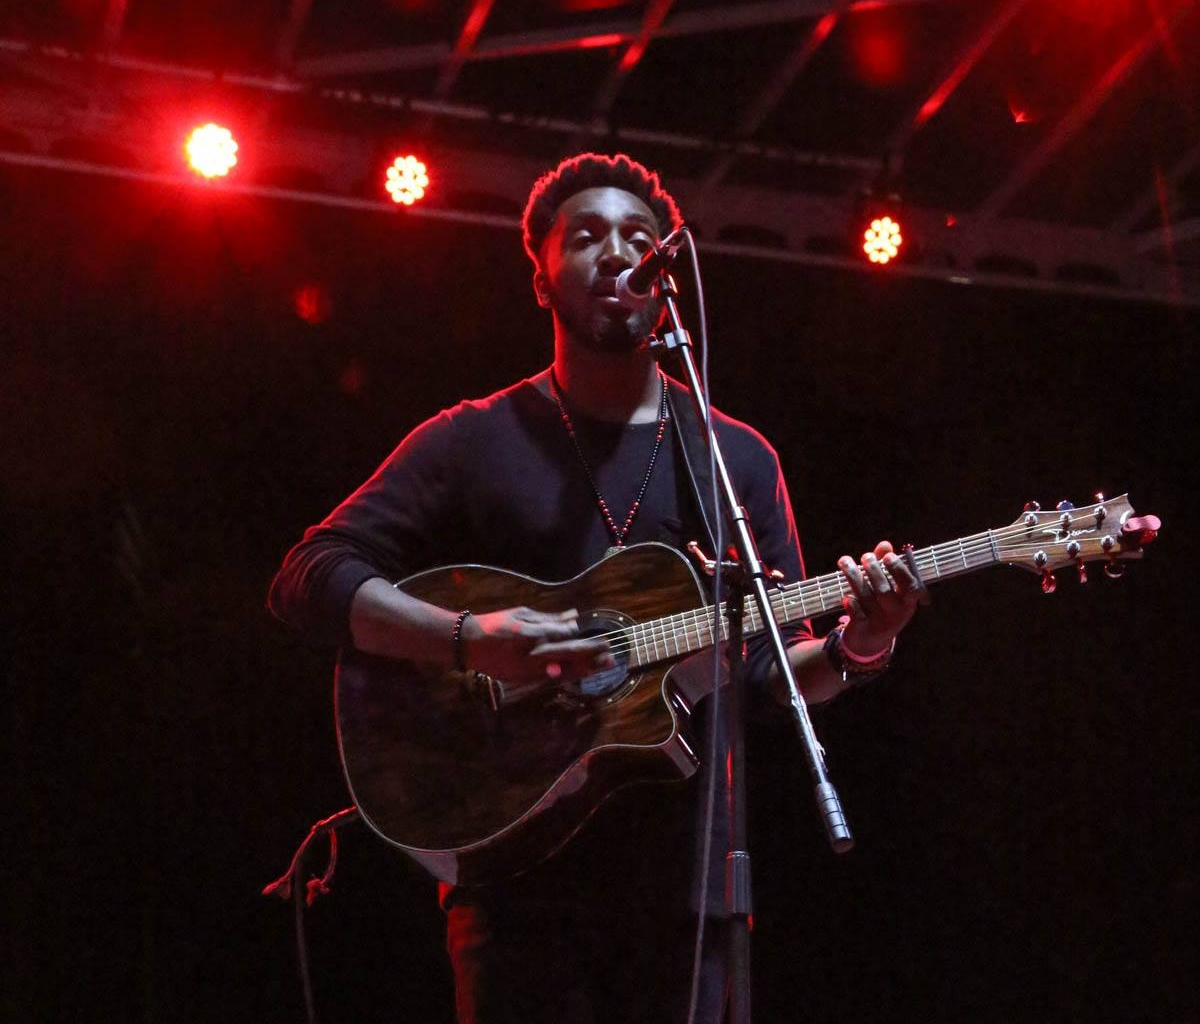 2016 AEGT Finale winner David Oliver Willis will also perform. Photo by Phelps Media Group.